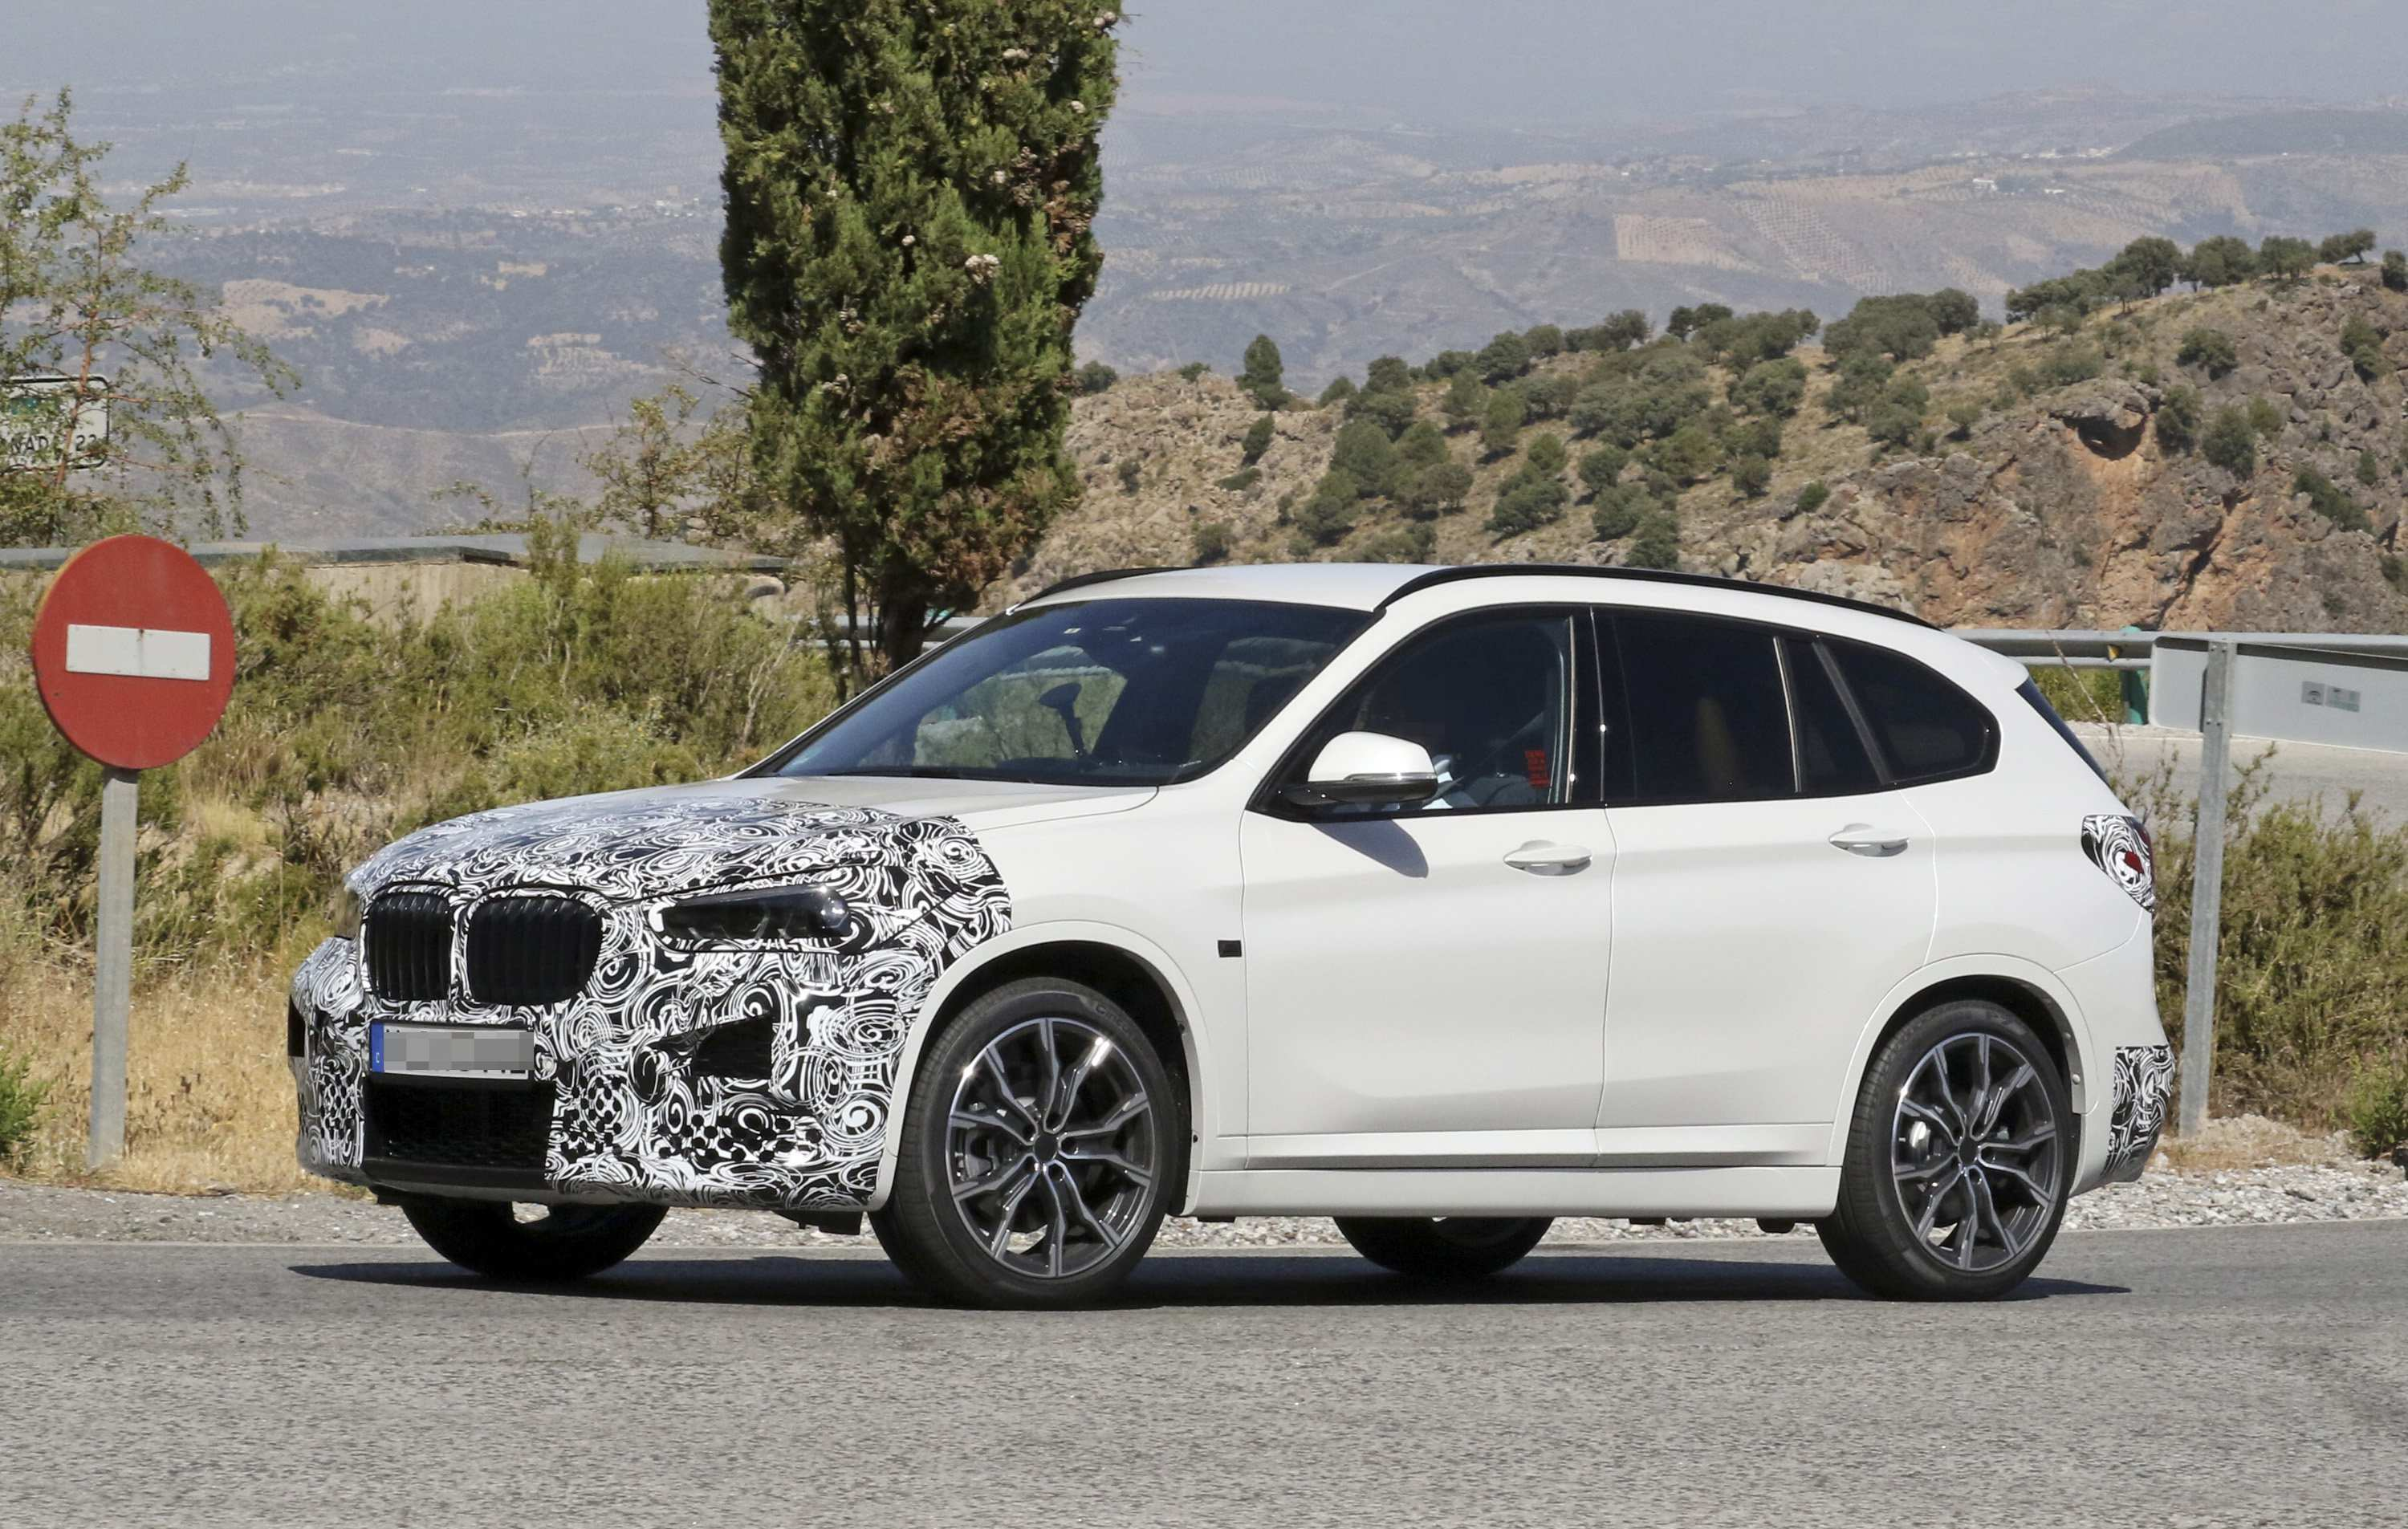 62 Gallery of The X1 Bmw 2019 Price And Review Release Date with The X1 Bmw 2019 Price And Review